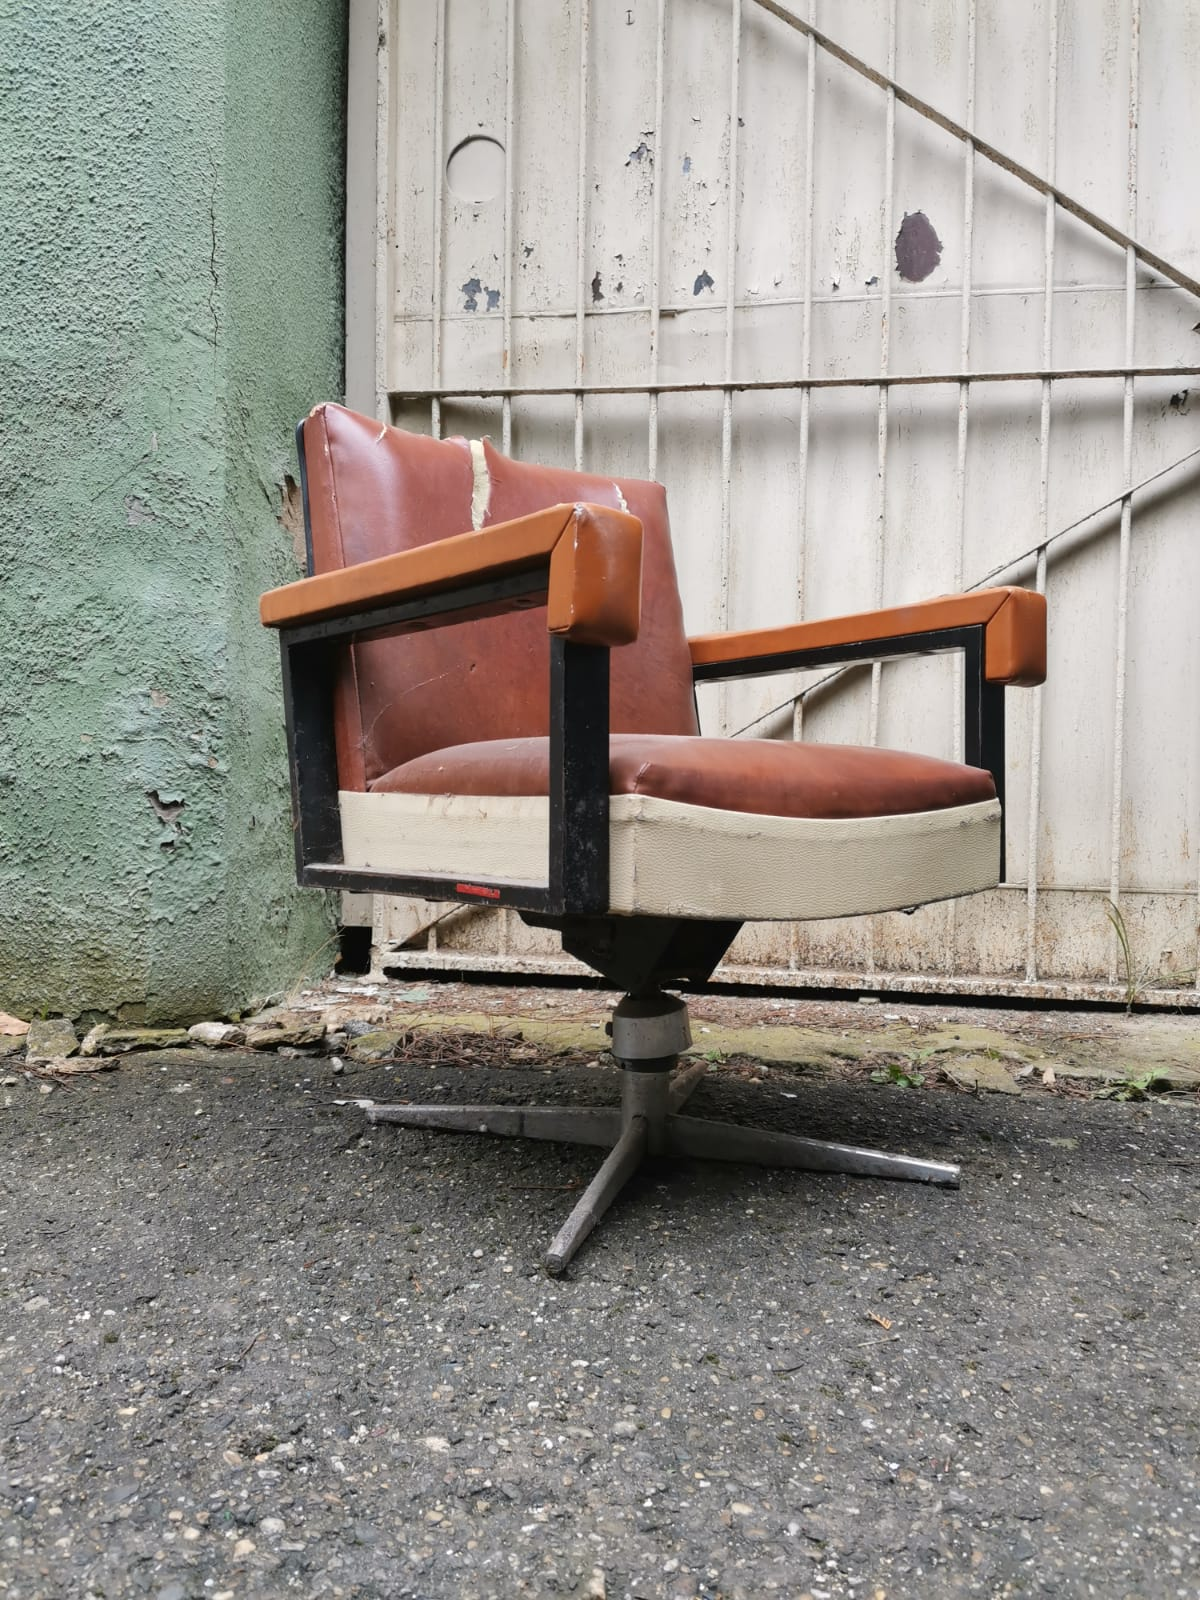 Super Strength Heavy Metal Framed Industrial Built 50s Office Chair Collectible Old Stuff